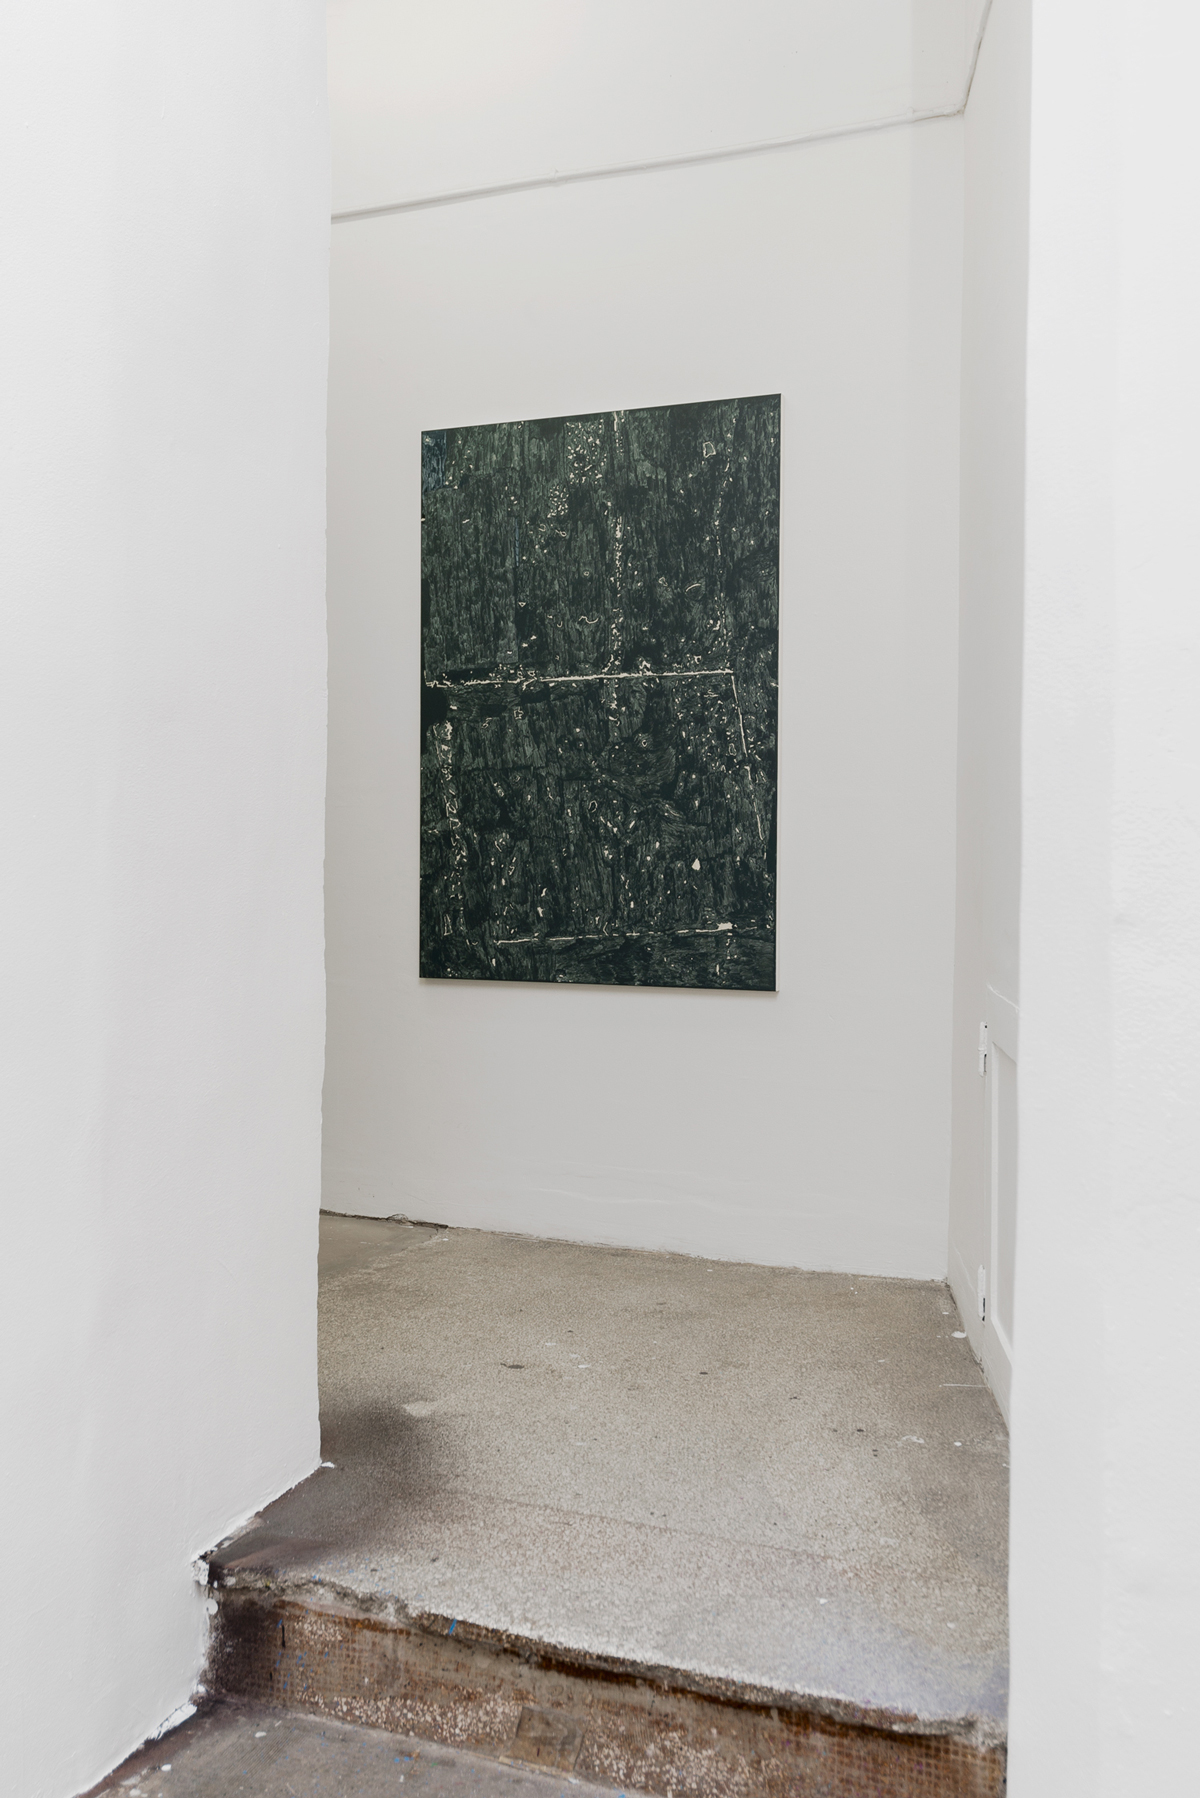 B-B-B-Bootlegs, installation view, Gallery Steinsland Berliner. Xerox Dust (2017), 90 x 130, acrylic on canvas.